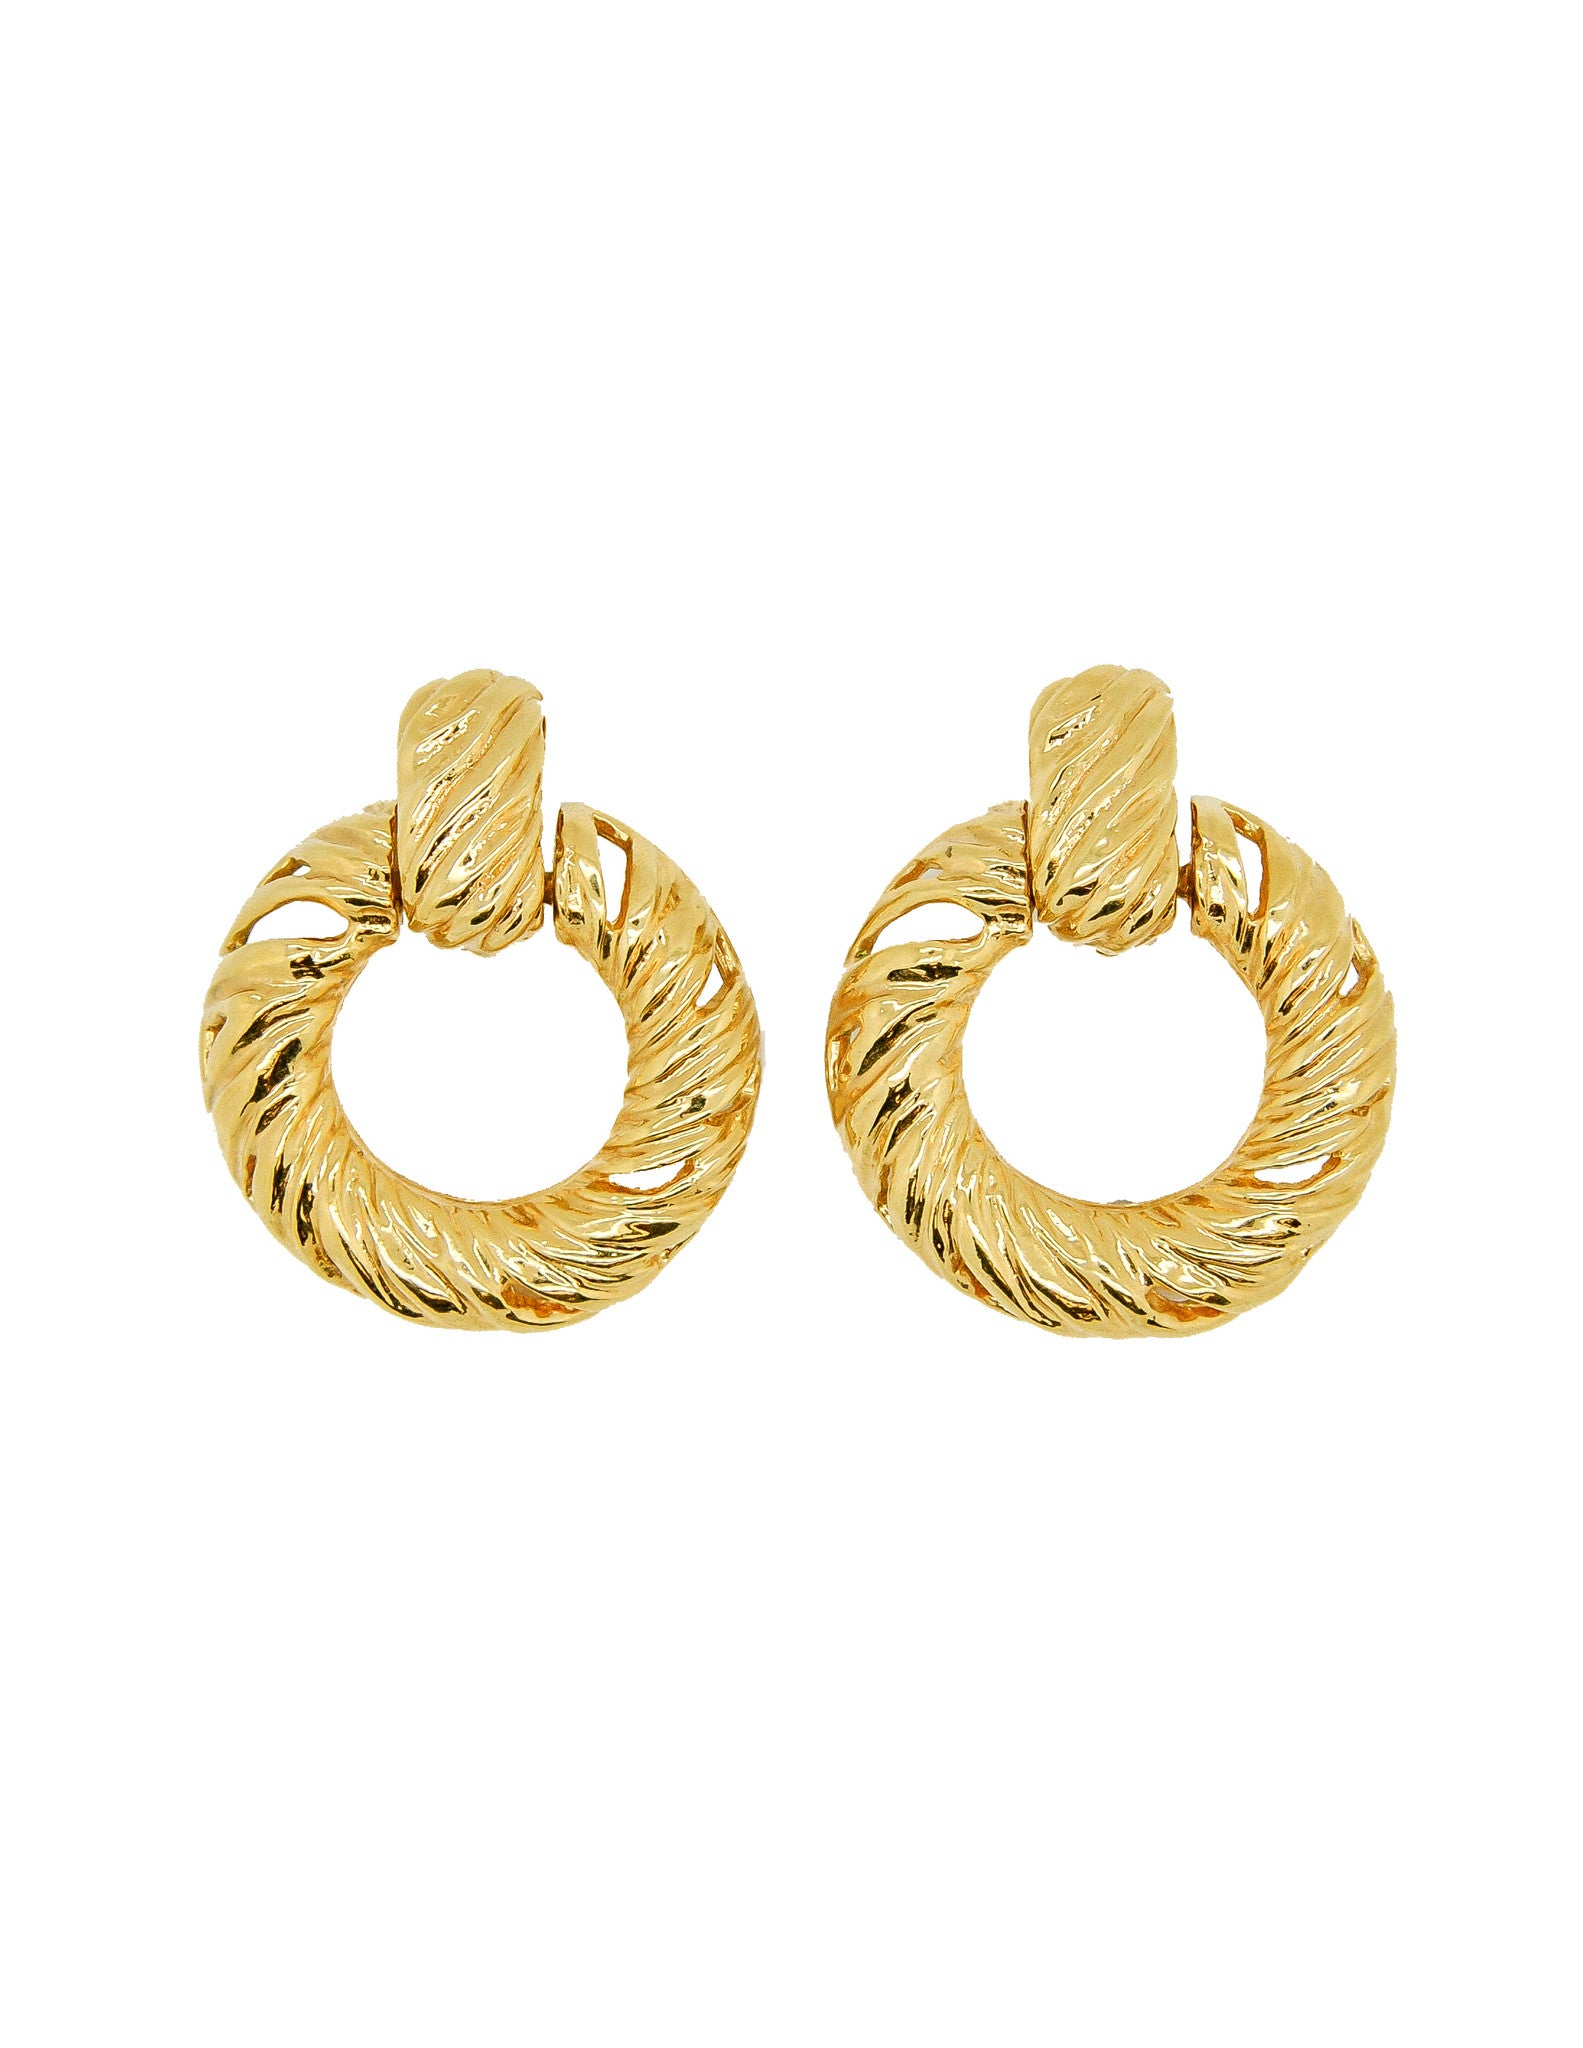 sku coin bullion kruggerrands gold vintage shop earrings style ozt yellow